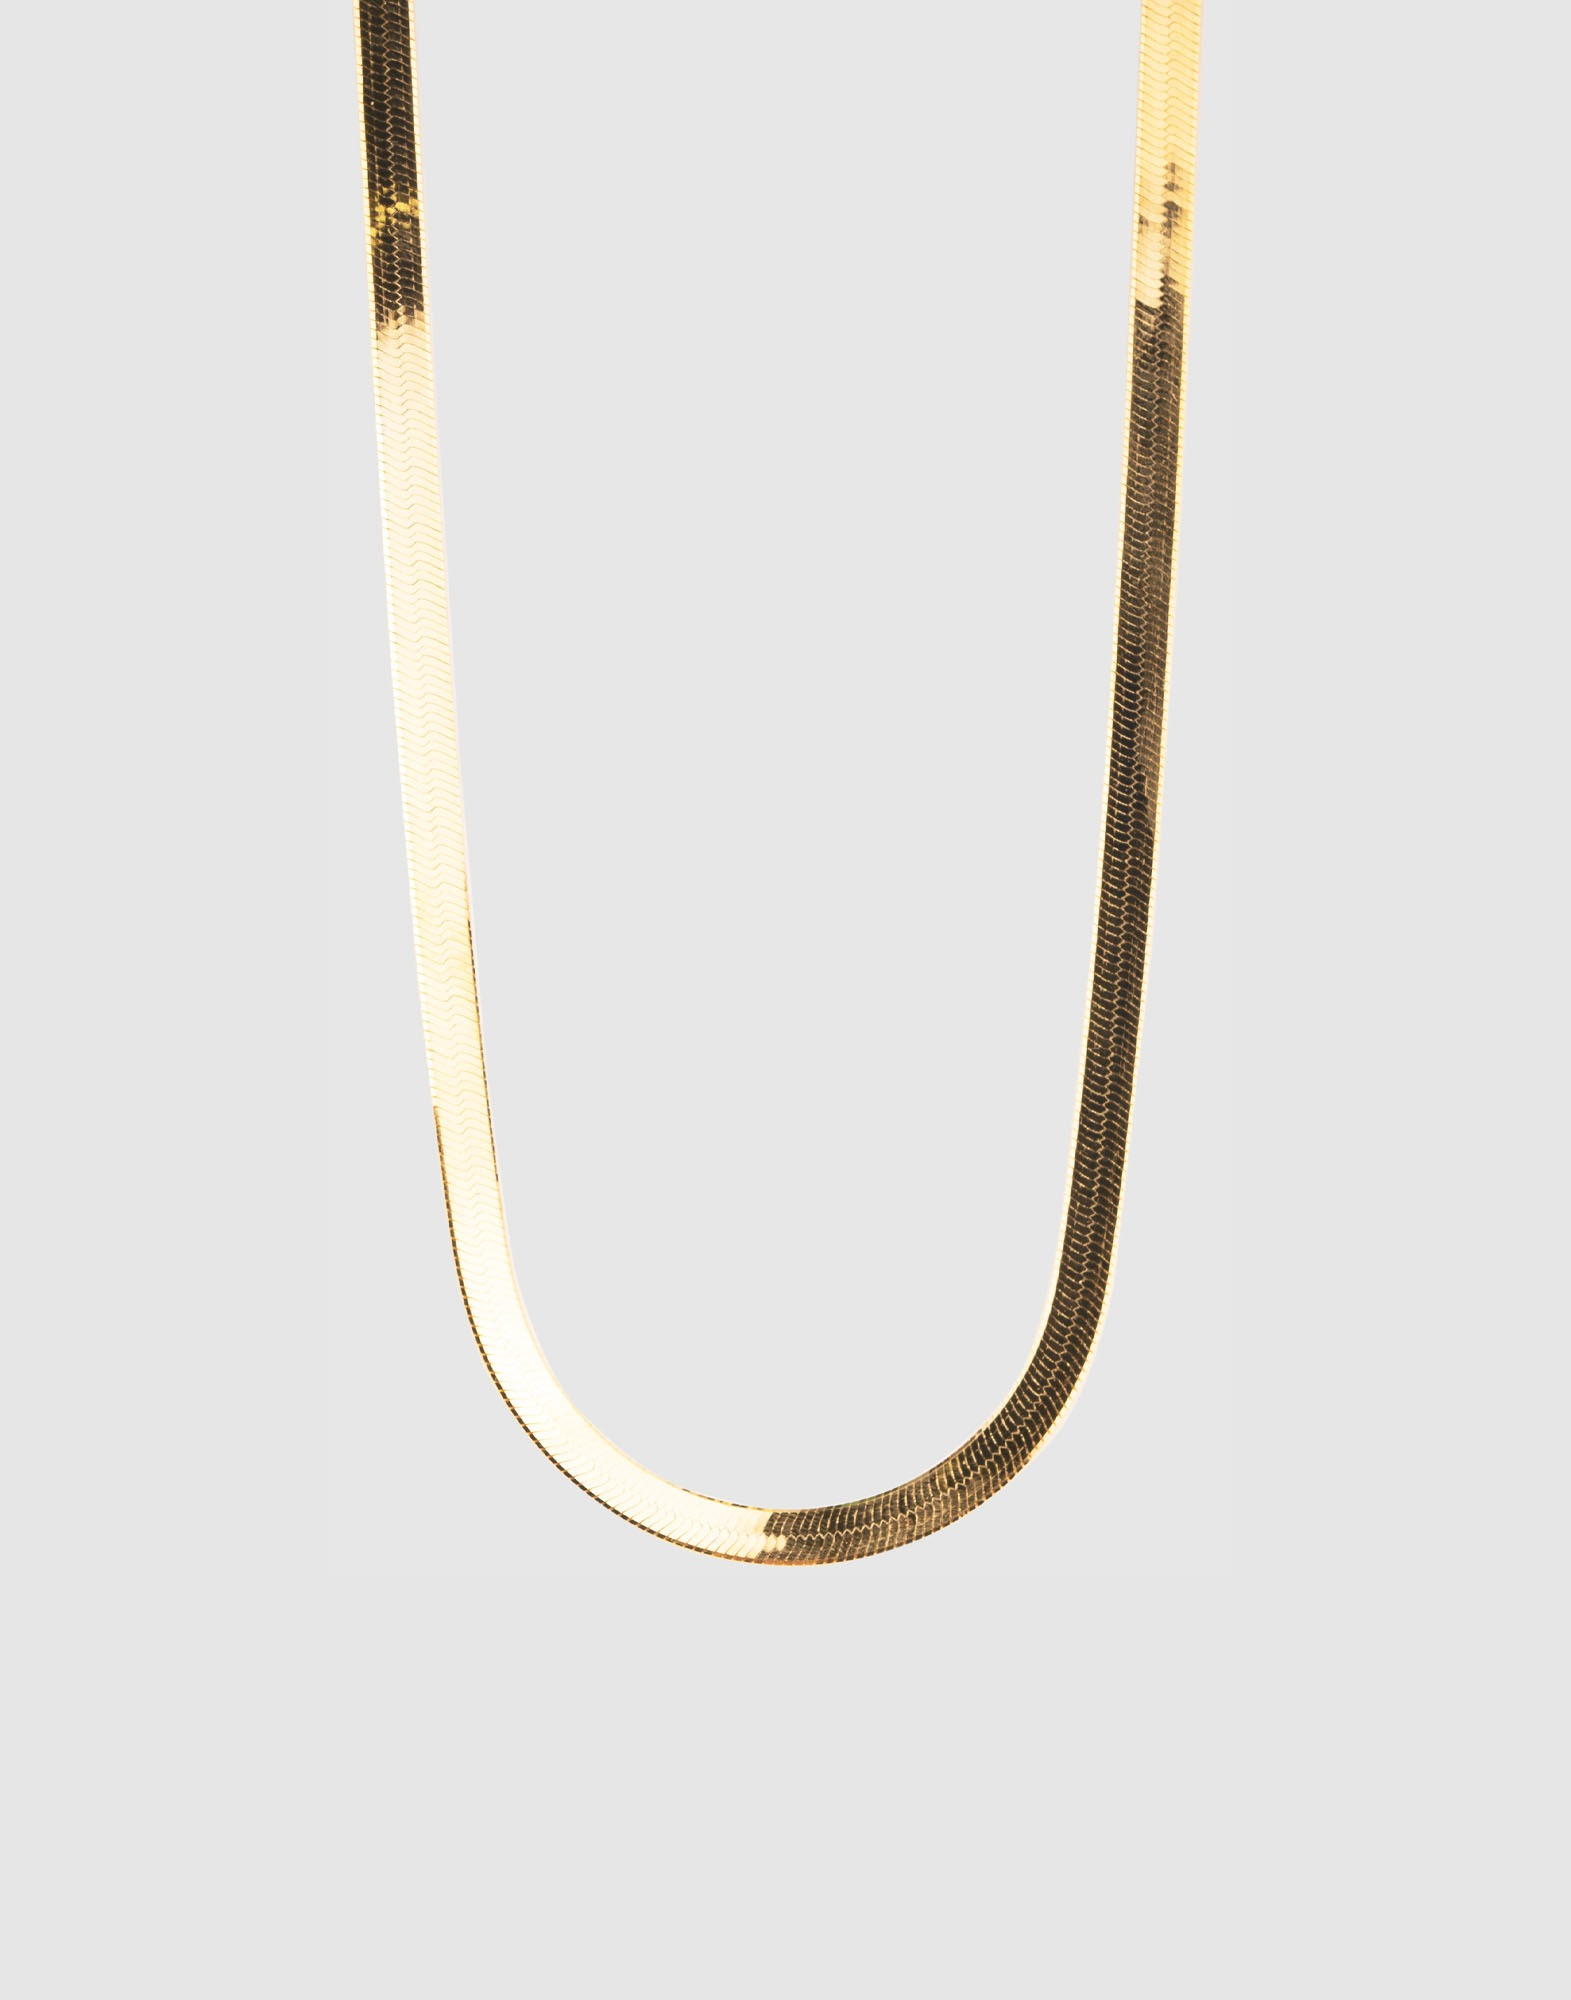 snake chain necklace (18k gold plated)